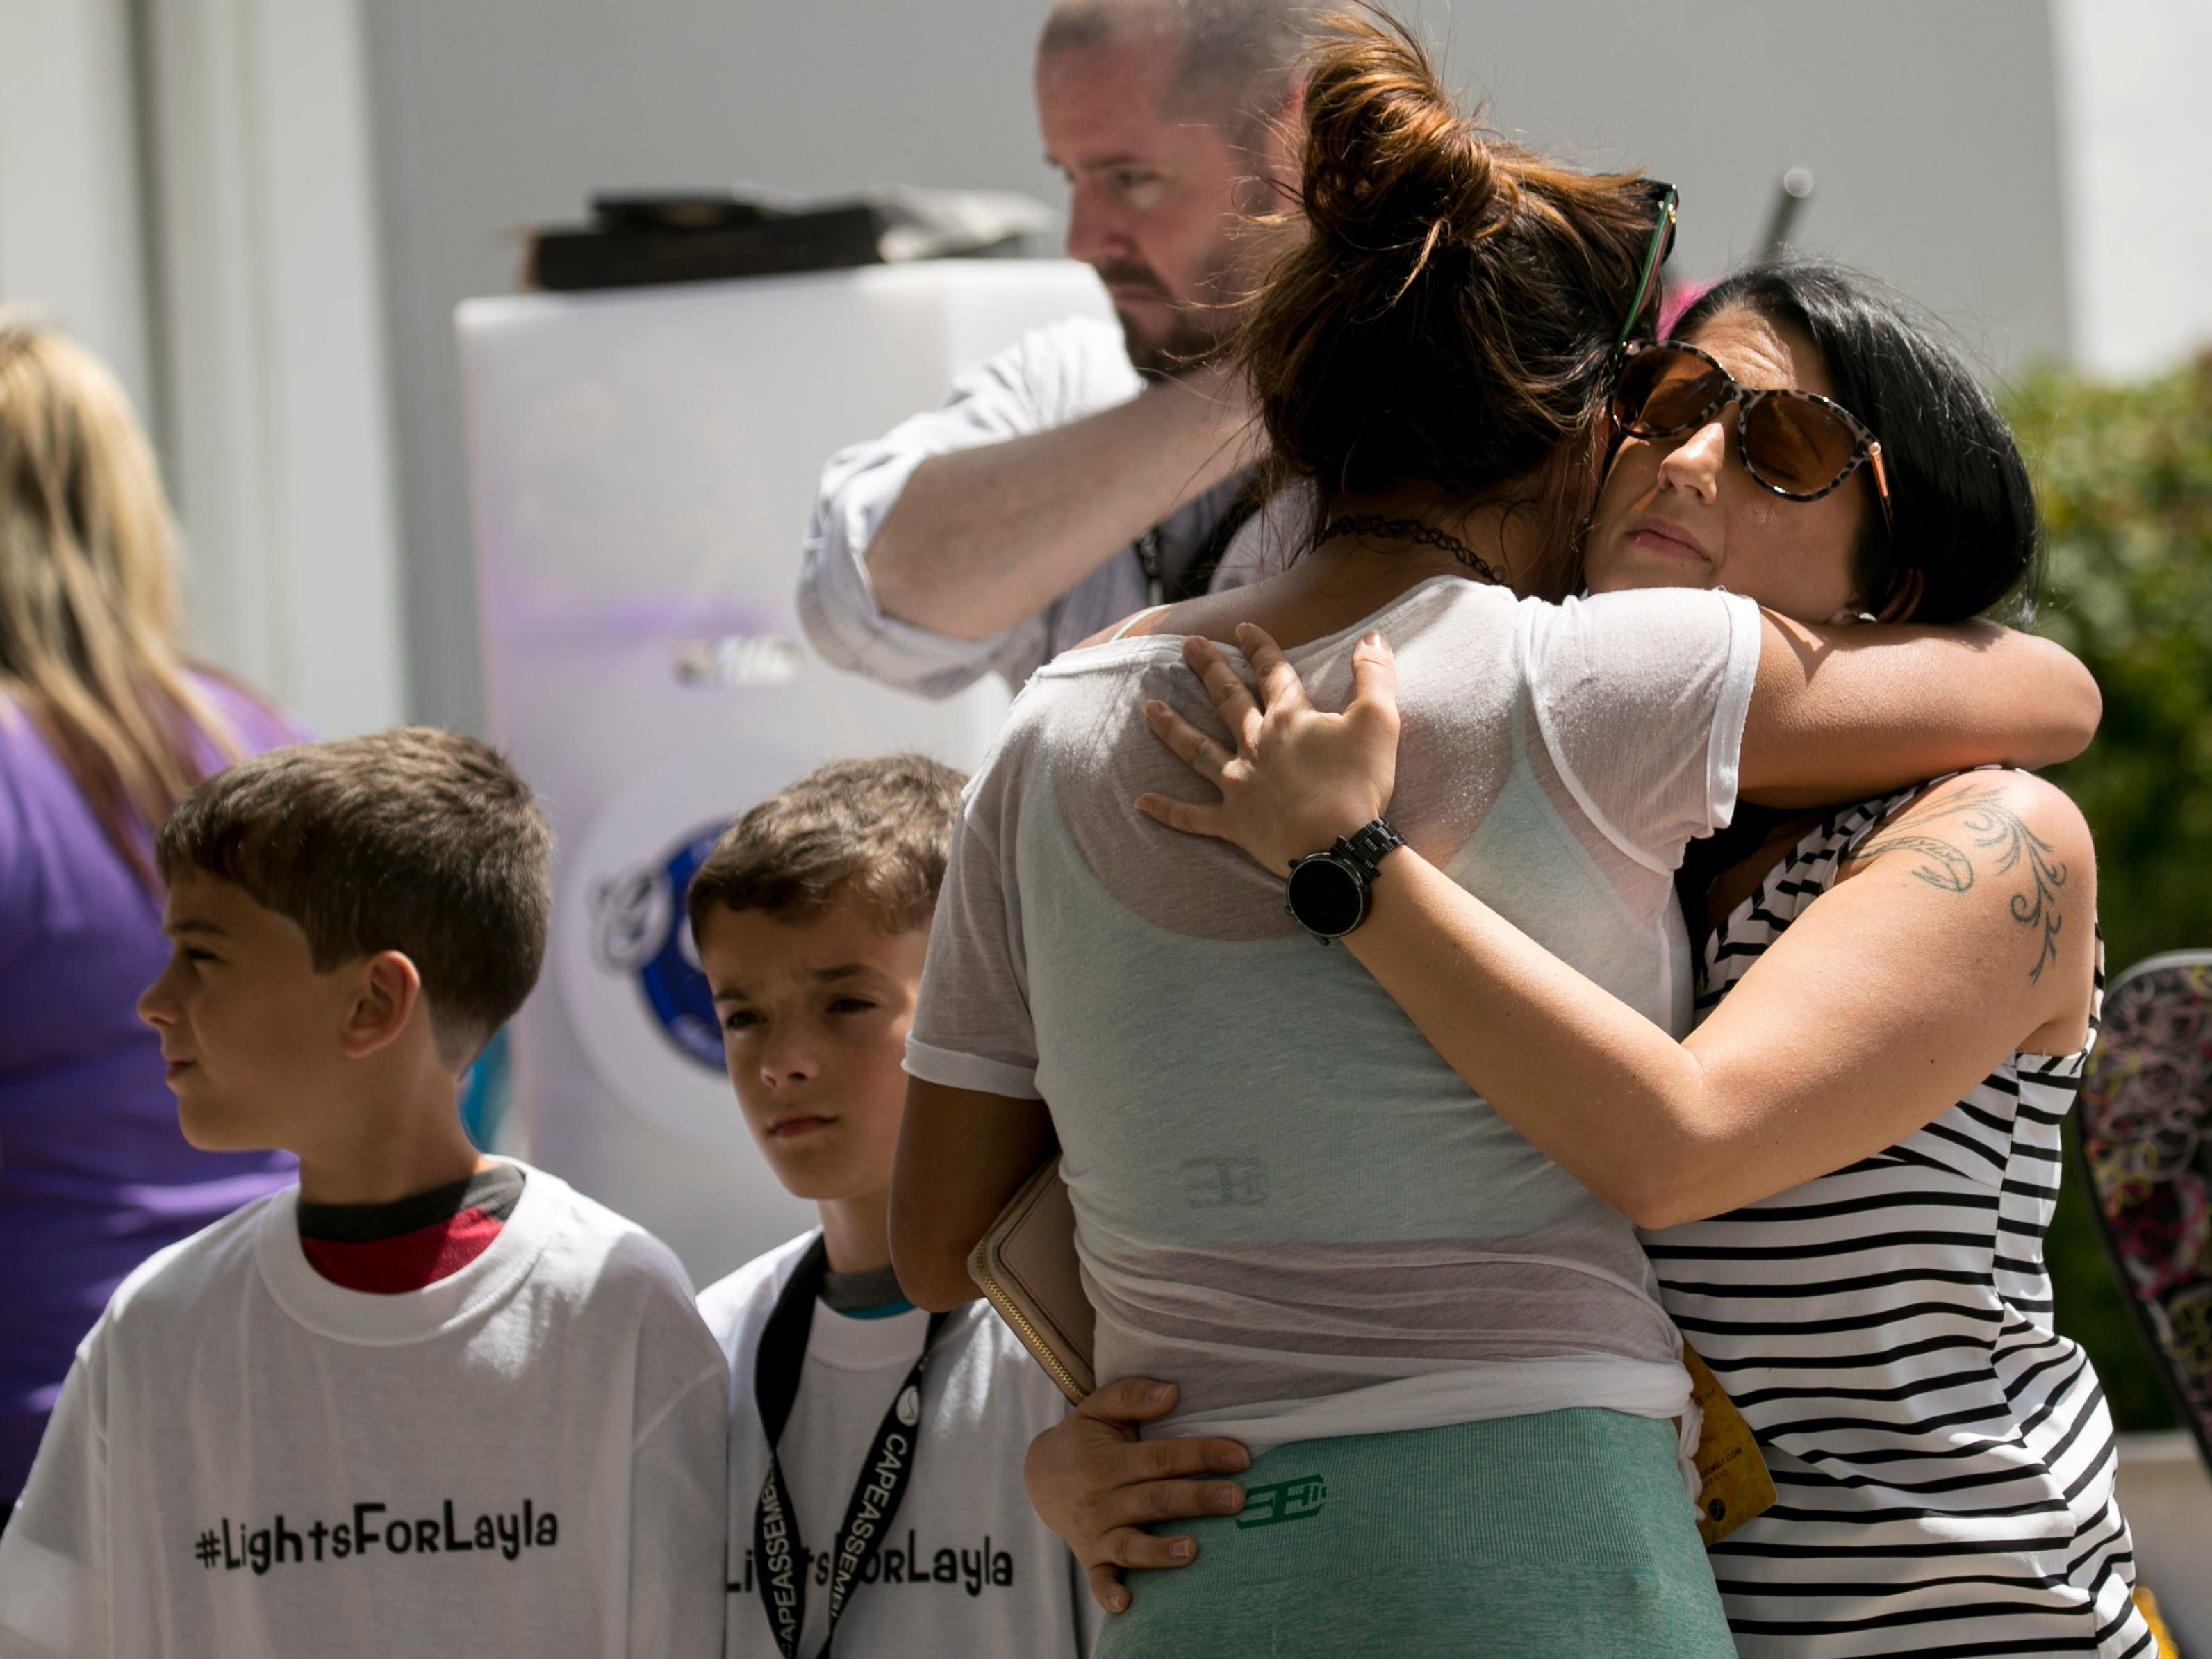 Lusana Diaz hugs Katleen Aiken, right, at the Lights for Layla fundraiser on Saturday, March 30, 2019, in Cape Coral. Aiken's daughter Layla was killed by a hit-and-run driver this week.